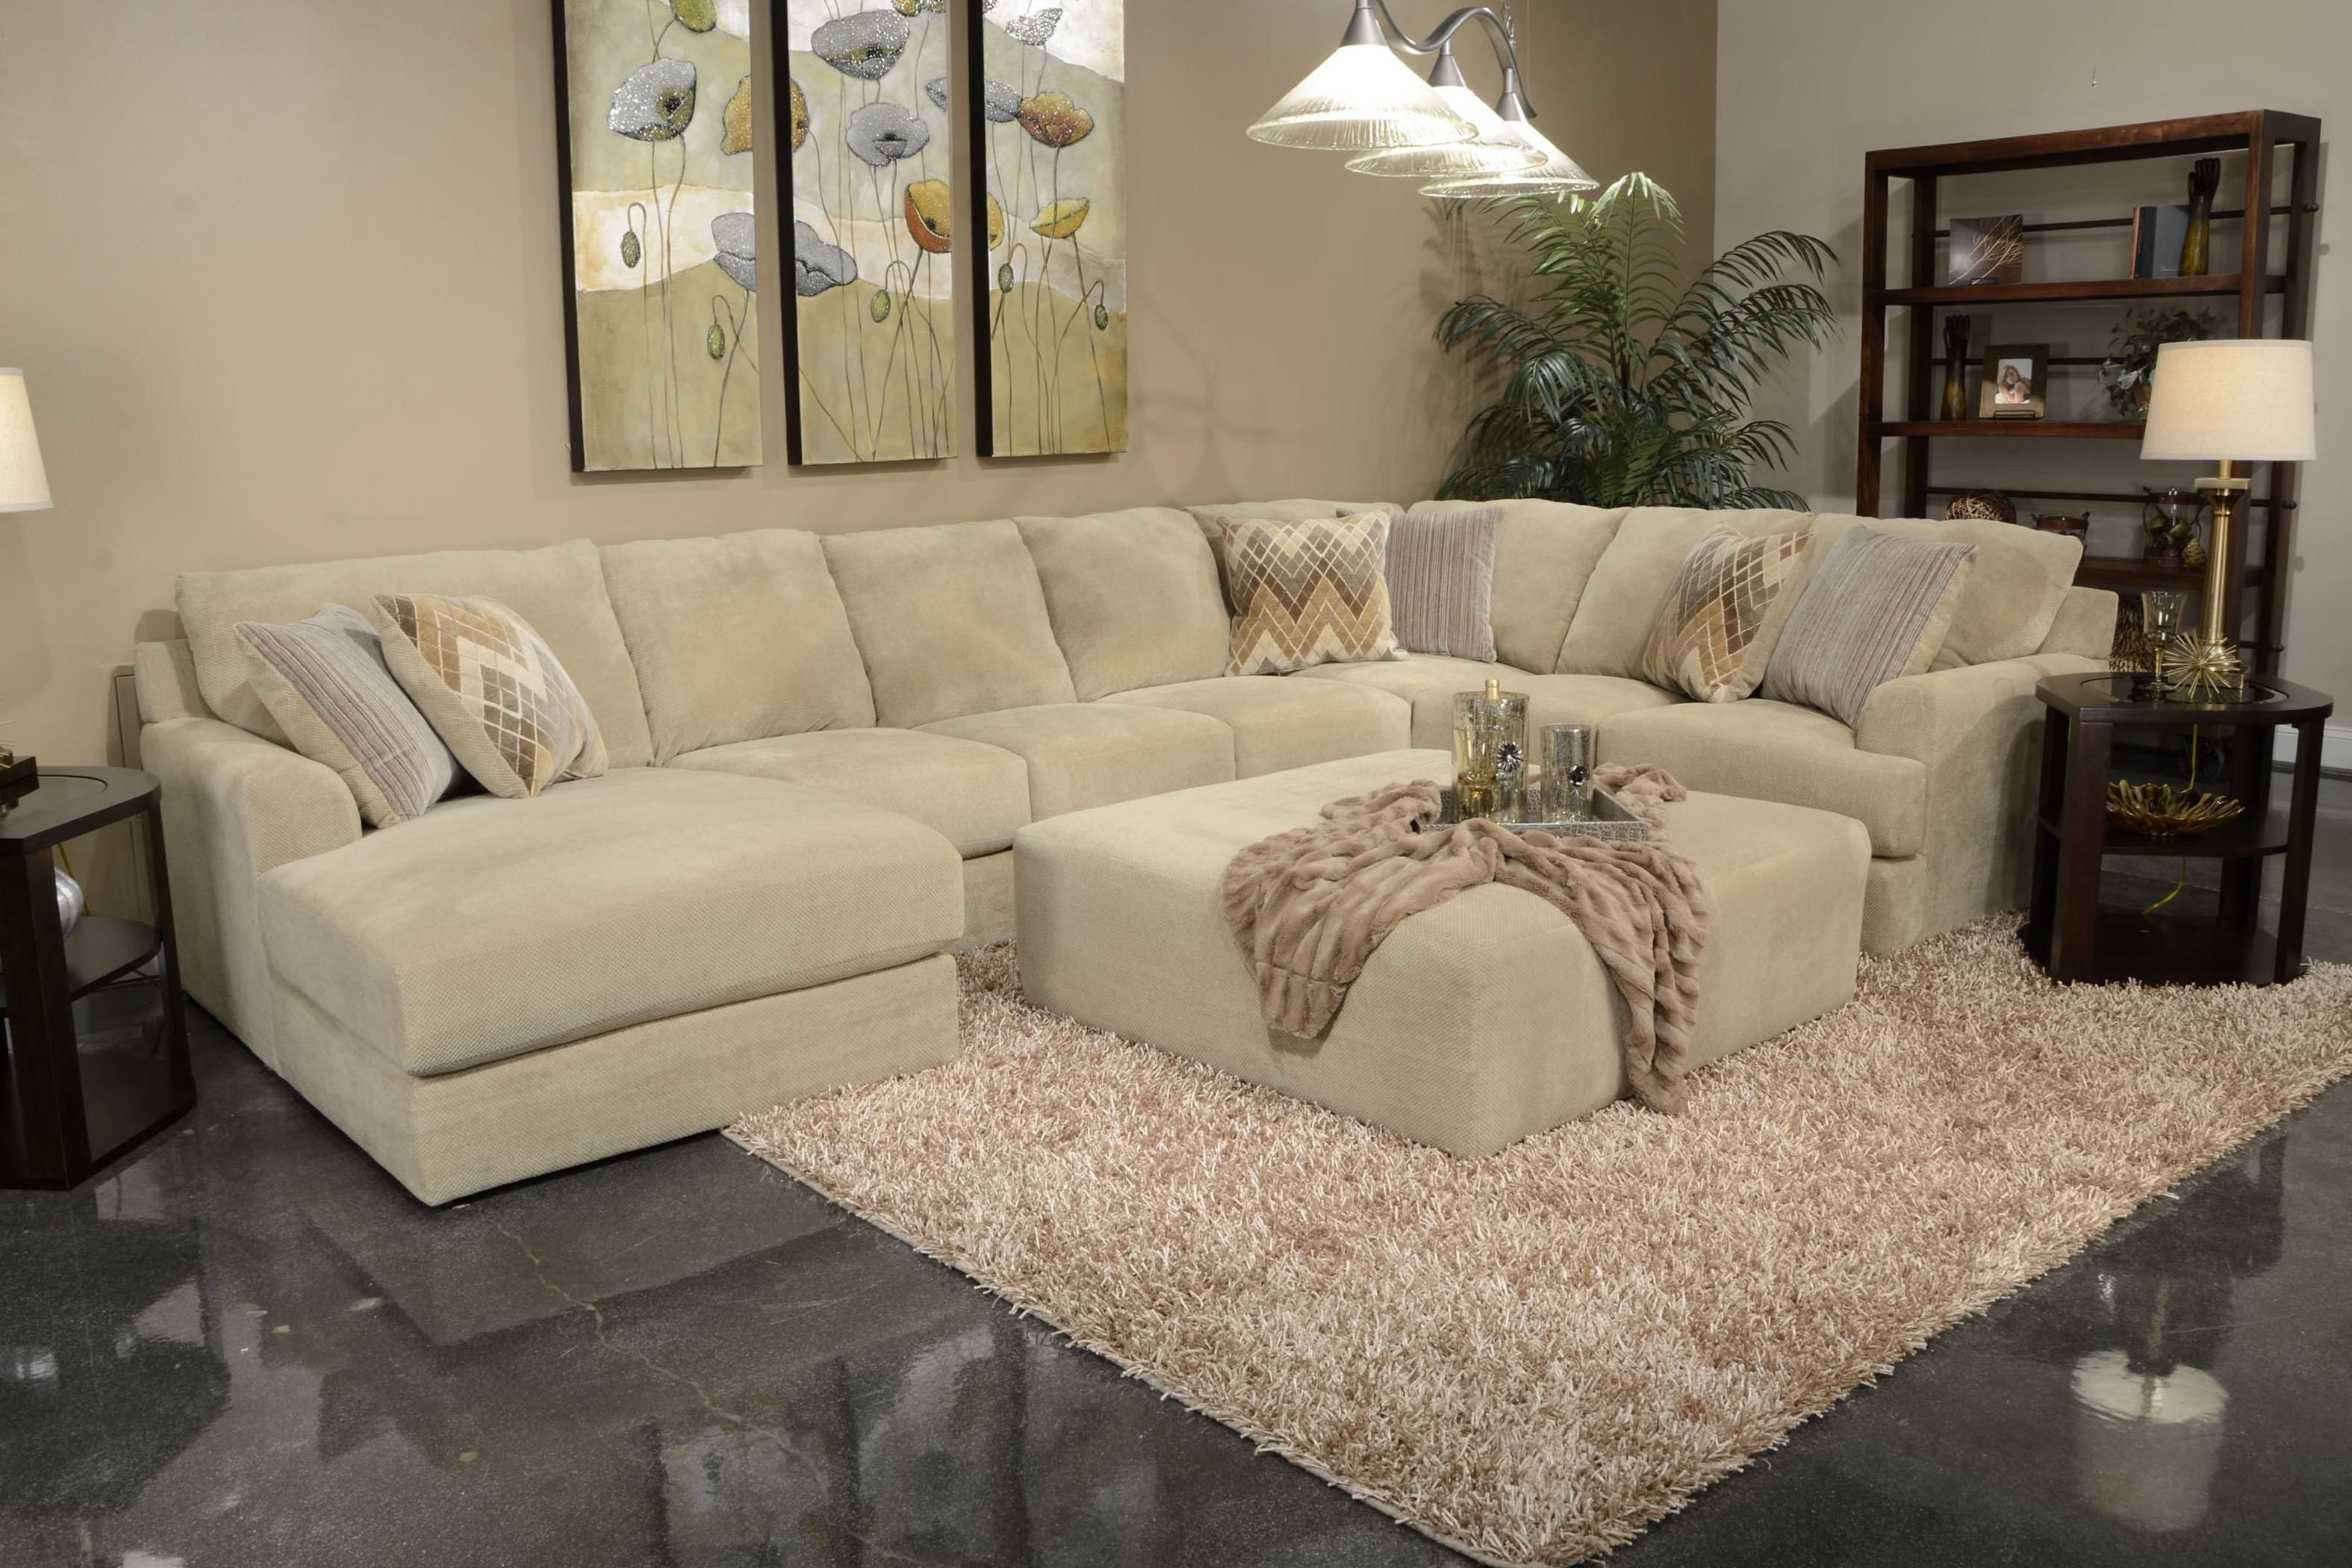 Six Seat Sectional Sofajackson Furniture | Wolf And Gardiner with Michigan Sectional Sofas (Image 6 of 10)